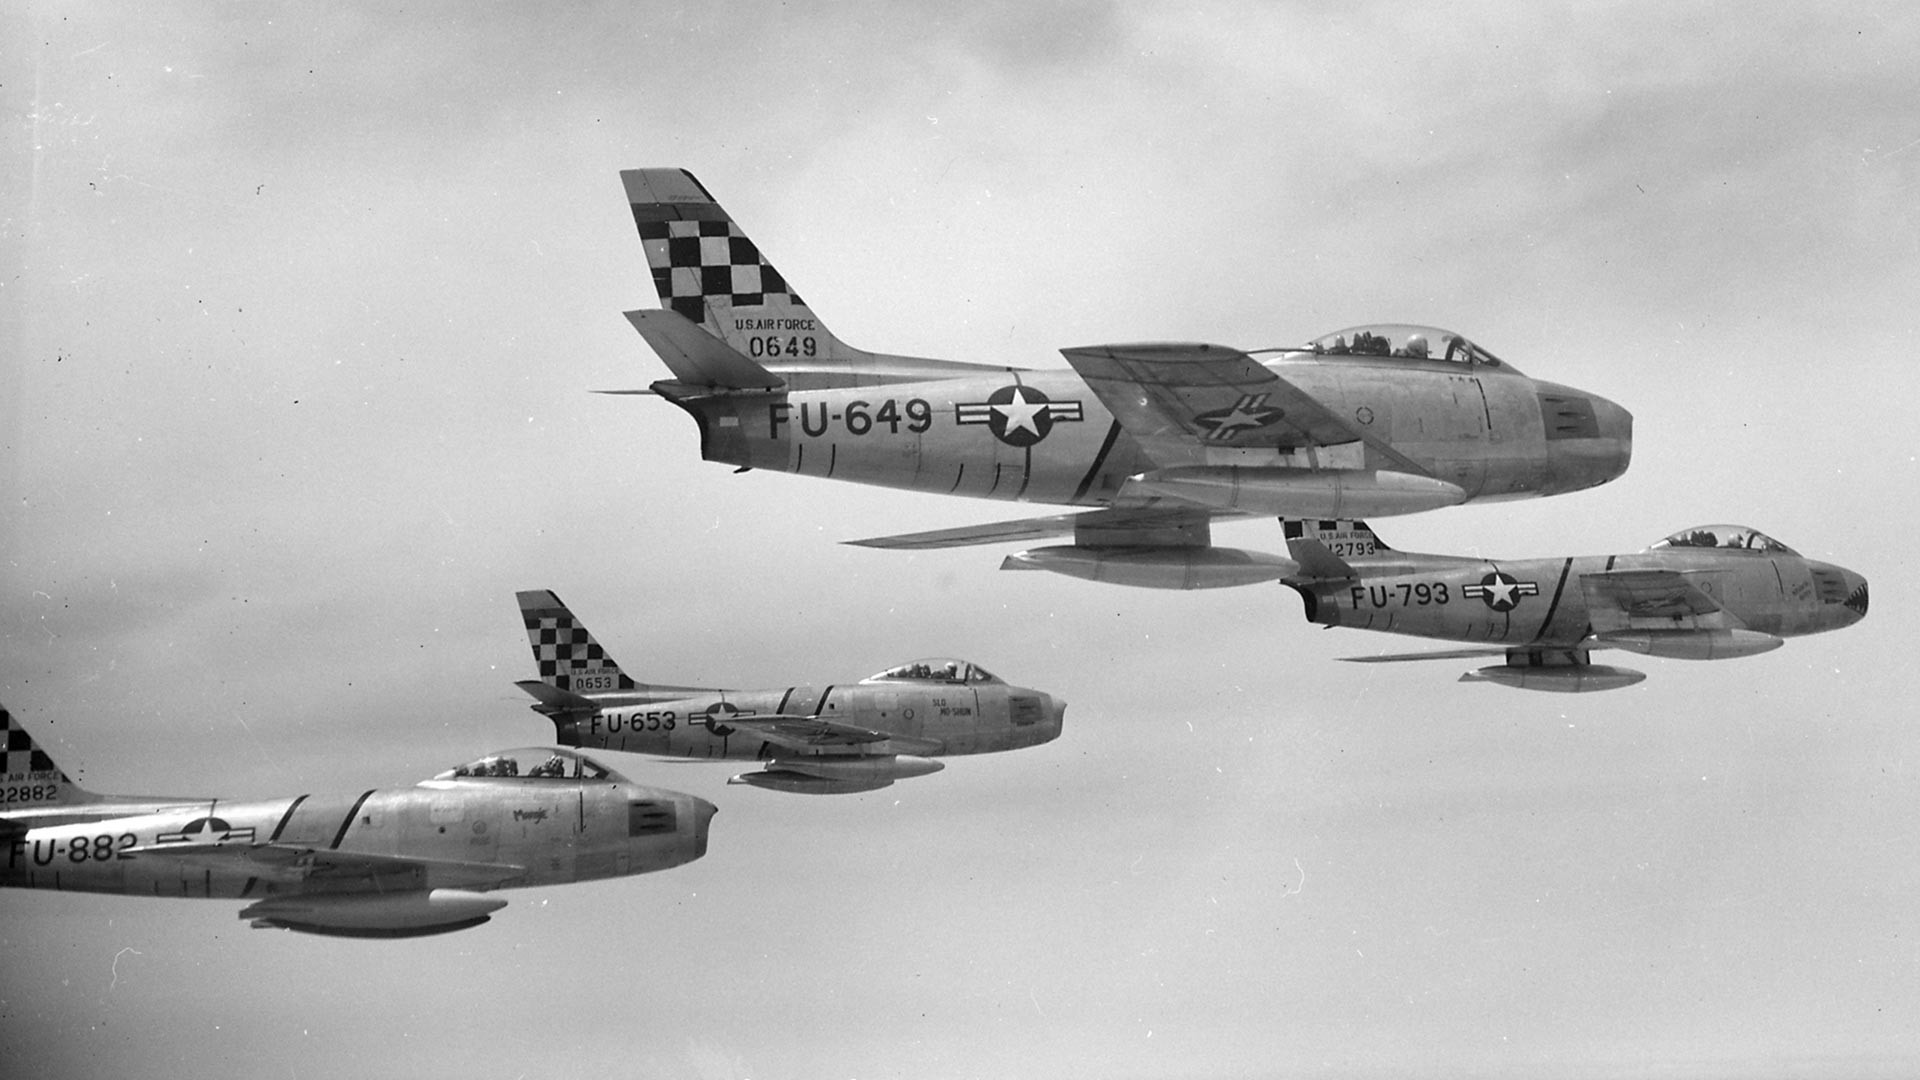 Four U.S. Air Force North American F-86E Sabre fighters of the 51st Fighter Interceptor Wing over Korea on 22 May 1953.